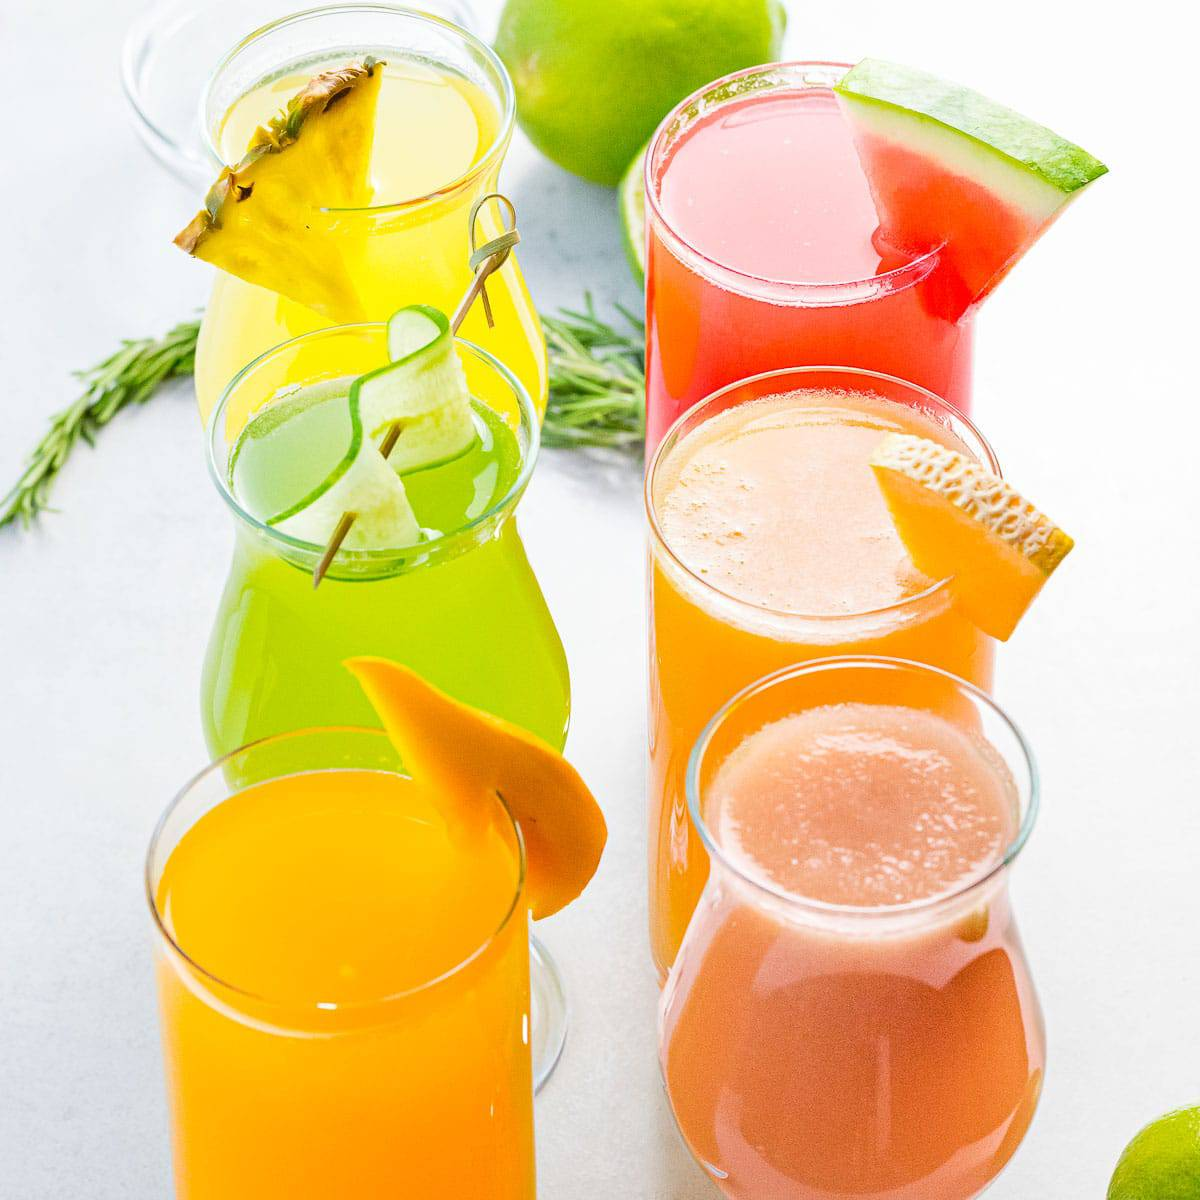 close up of aguas frescas flavors including watermelon, cucumber, mango, pineapple, and cantaloupe